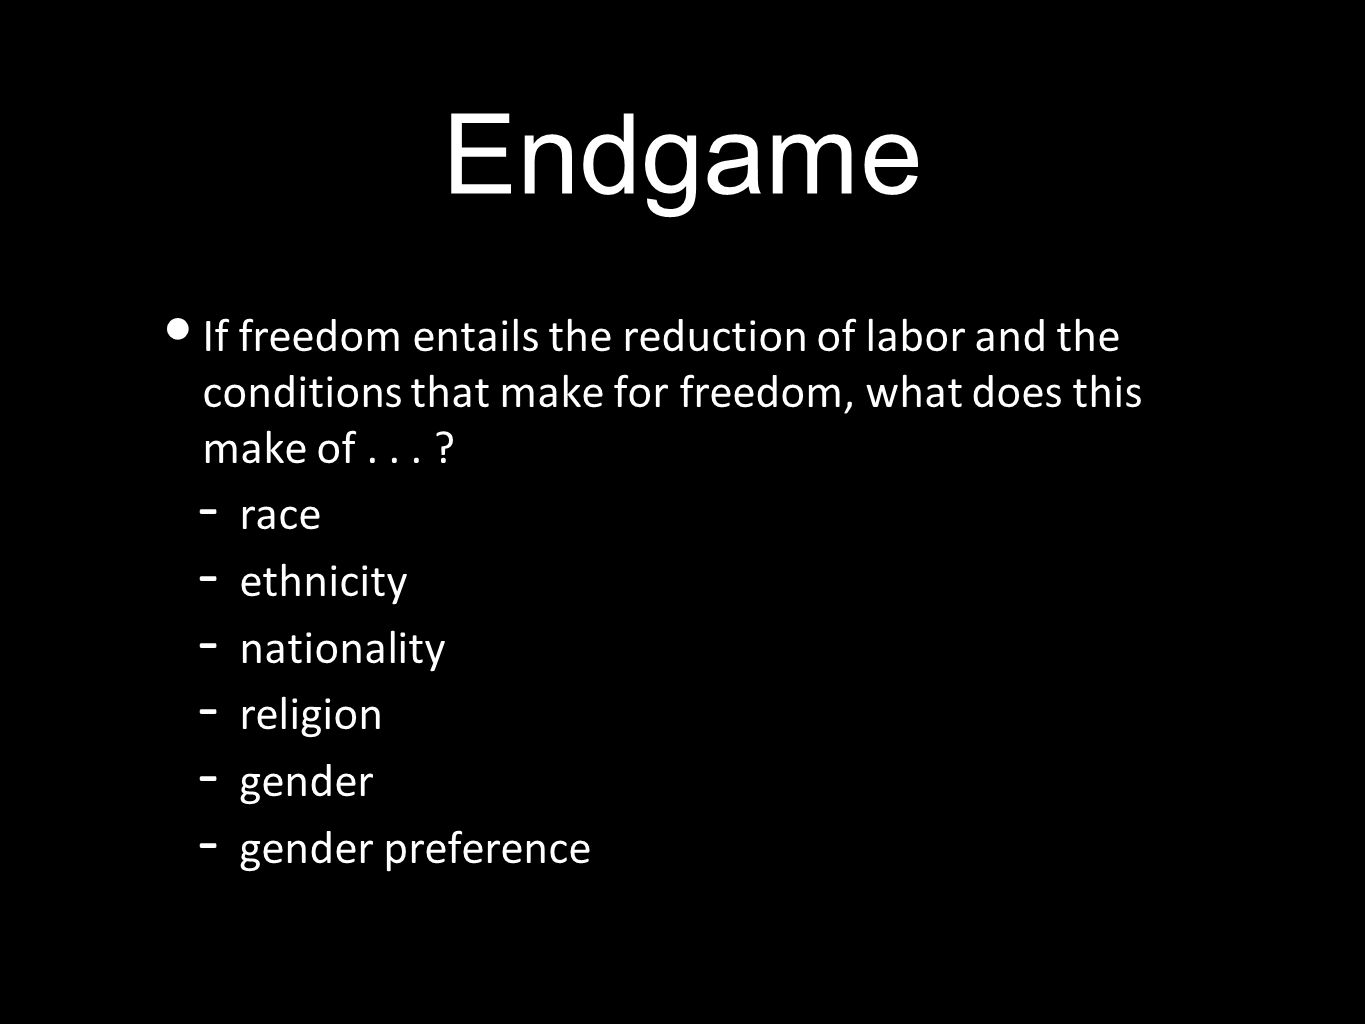 Endgame If freedom entails the reduction of labor and the conditions that make for freedom, what does this make of...